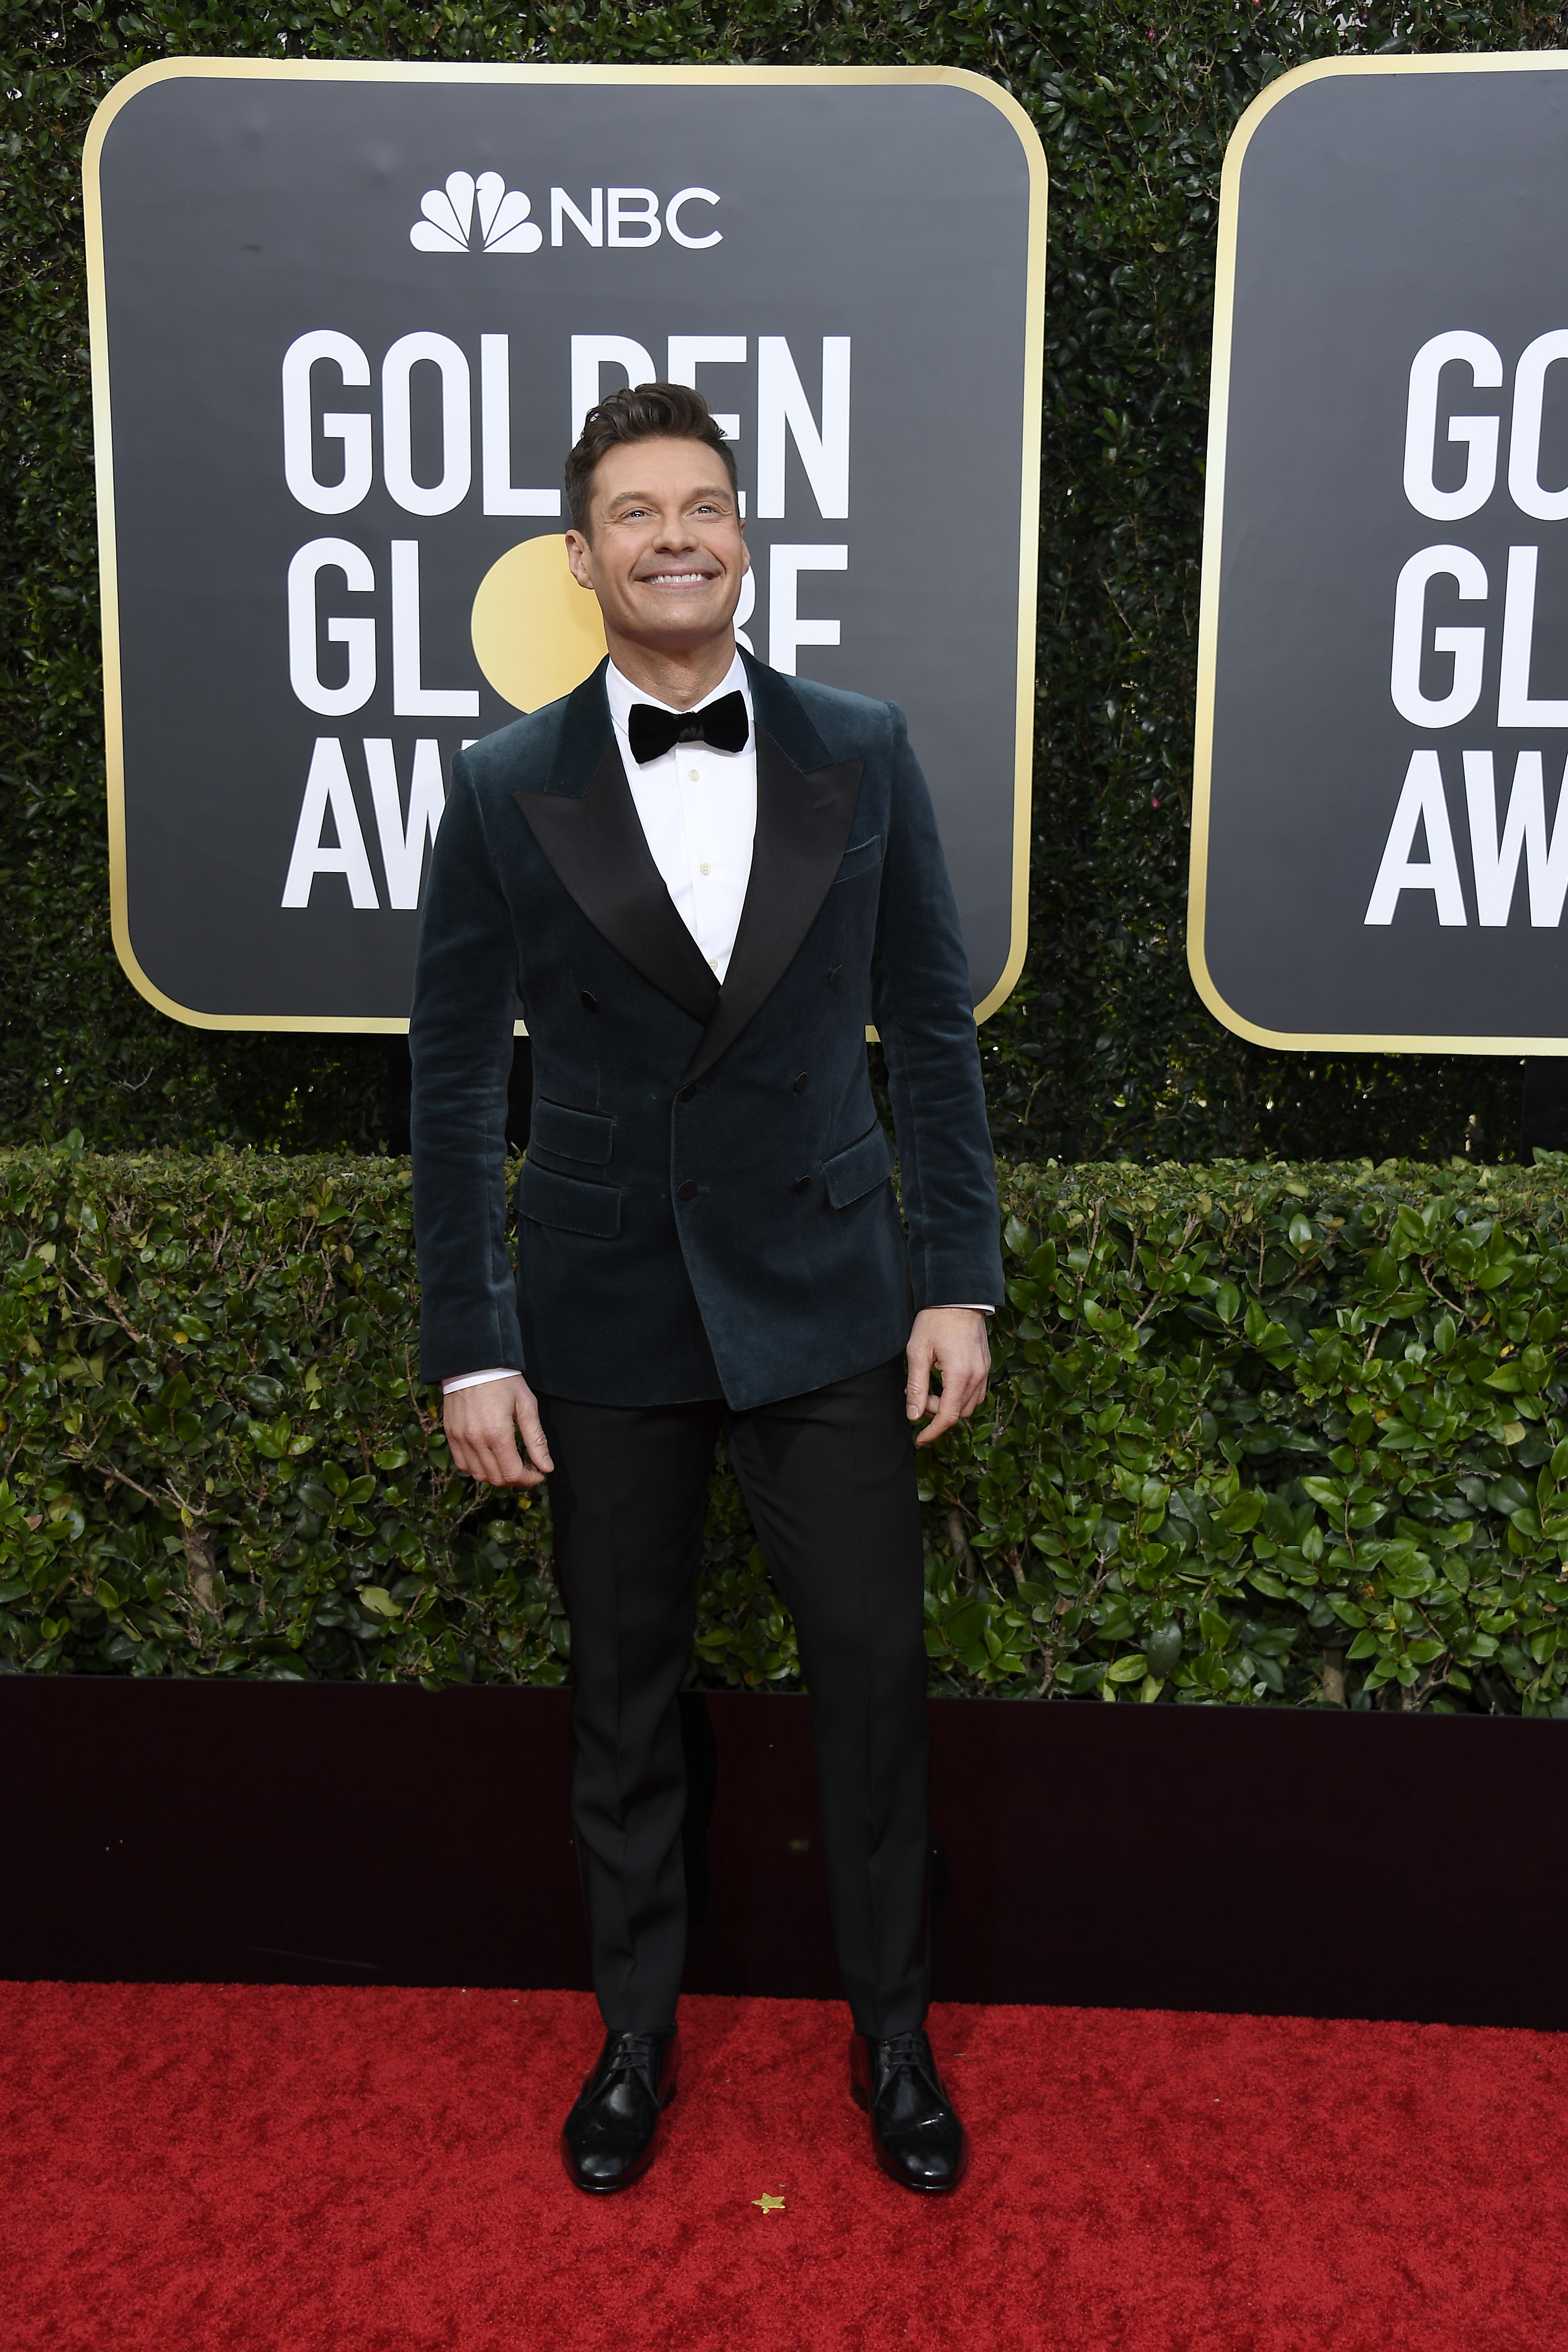 BEVERLY HILLS, CALIFORNIA - JANUARY 05: 77th ANNUAL GOLDEN GLOBE AWARDS -- Pictured: Ryan Seacrest arrives to the 77th Annual Golden Globe Awards held at the Beverly Hilton Hotel on January 5, 2020. -- (Photo by: Kevork Djansezian/NBC/NBCU Photo Bank via Getty Images)